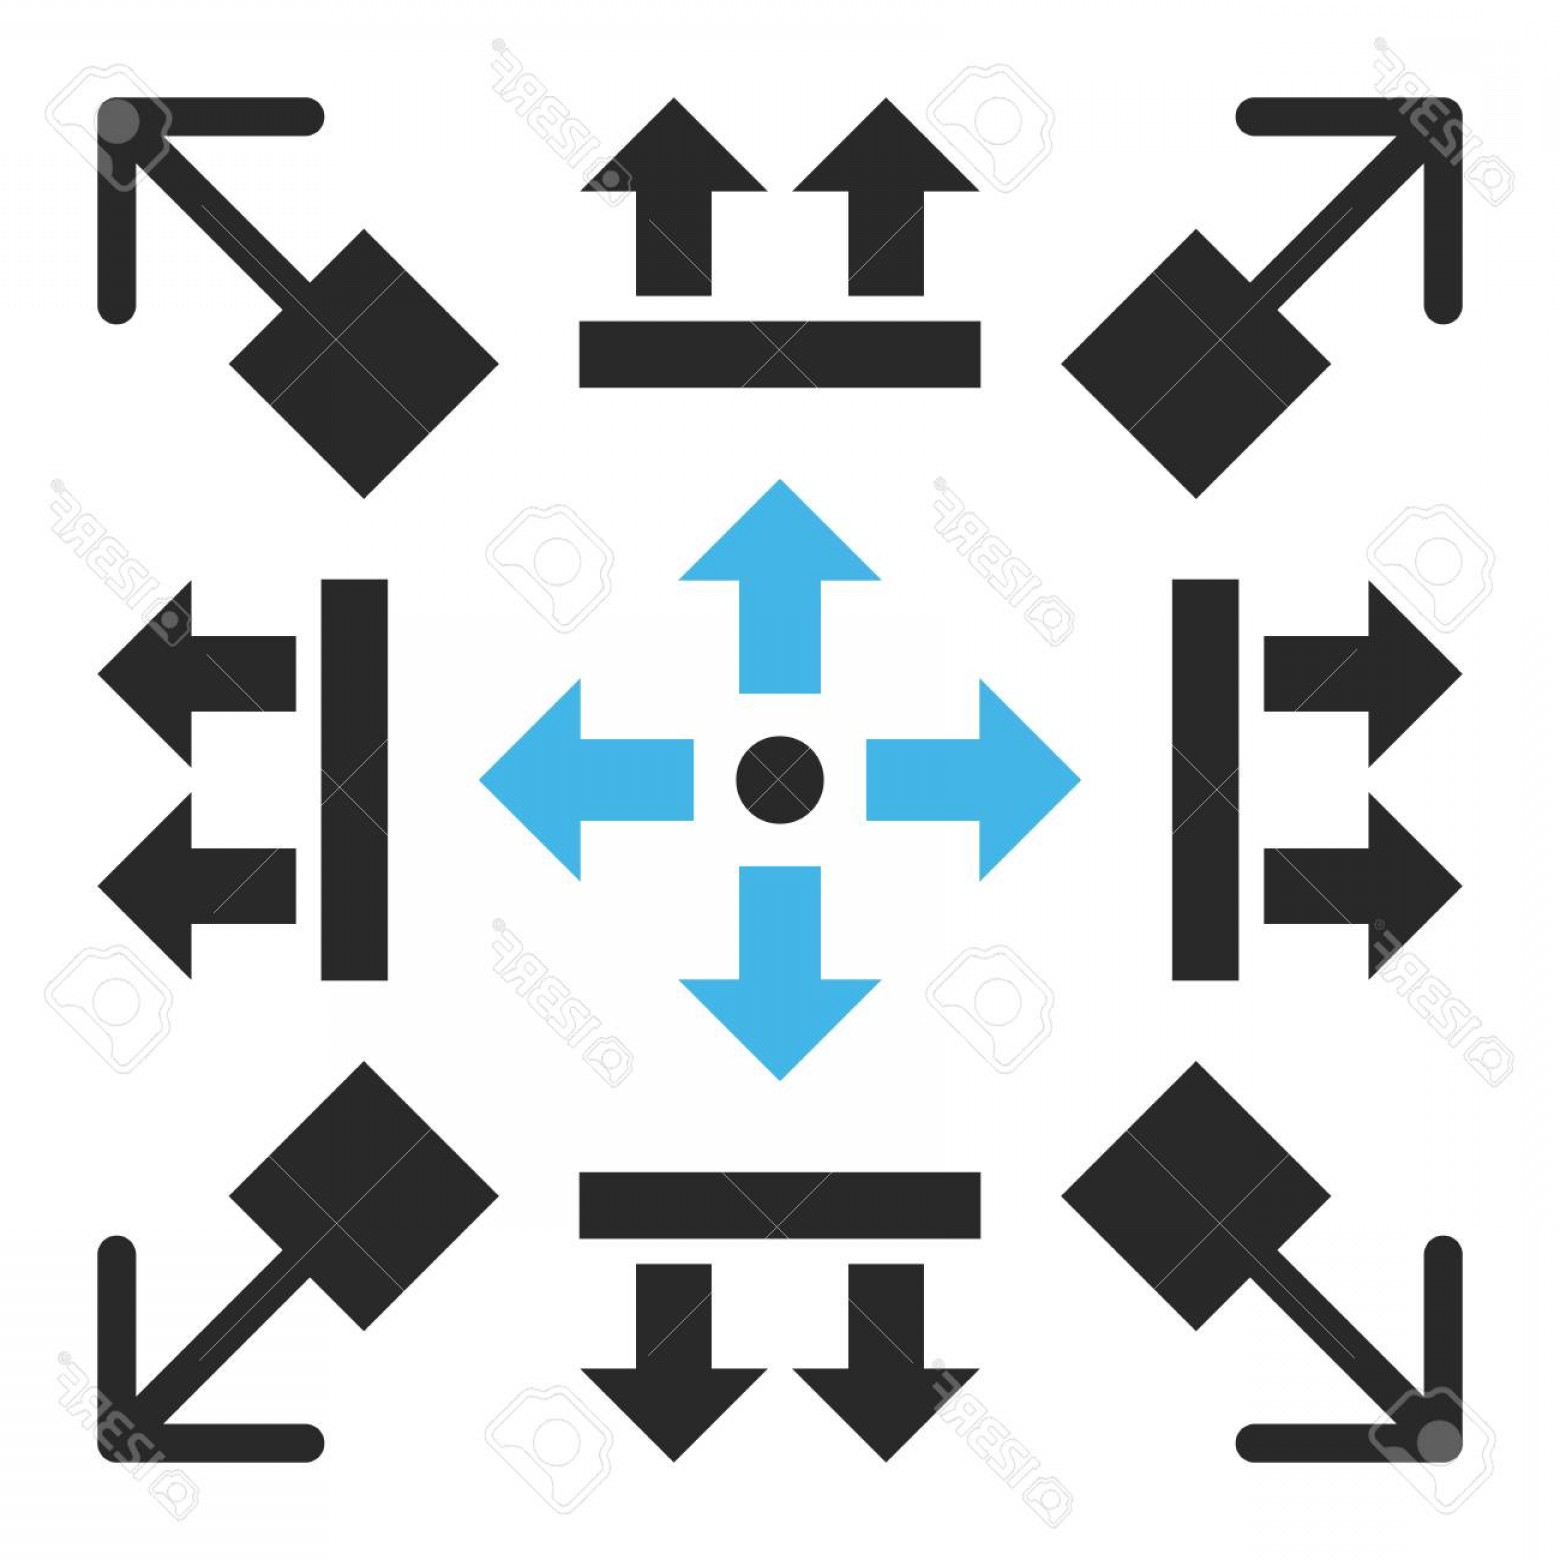 Gray Arrows Vector Art Graphics: Photostock Vector Pull Arrows Vector Icon Set Collection Style Is Bicolor Blue And Gray Flat Symbols On A White Backgr